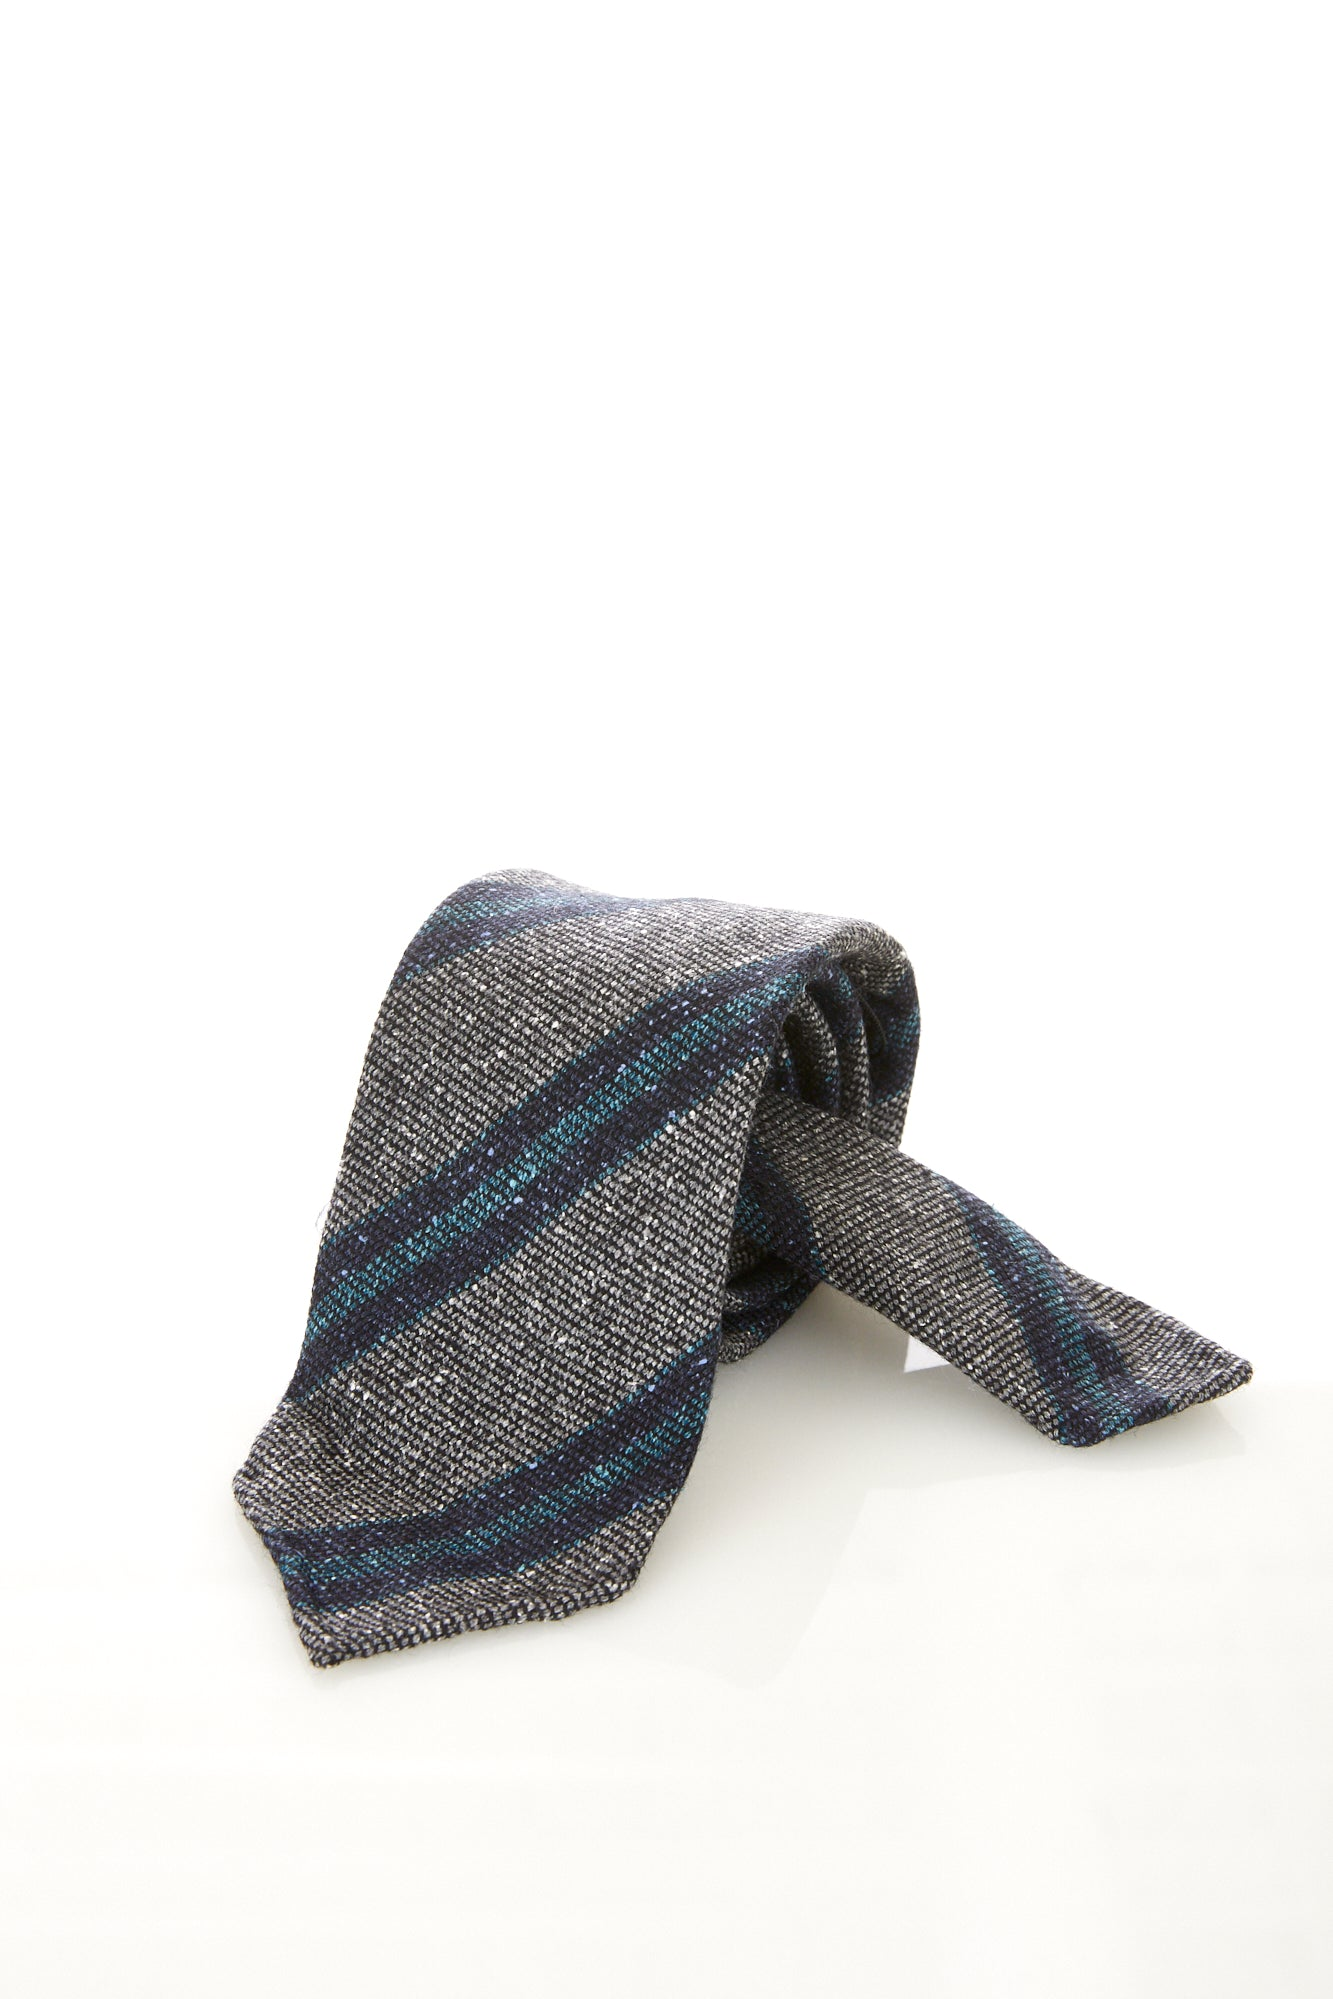 Drake's Grey Donegal Striped Tie - Accessories - Drake's - LALONDE's